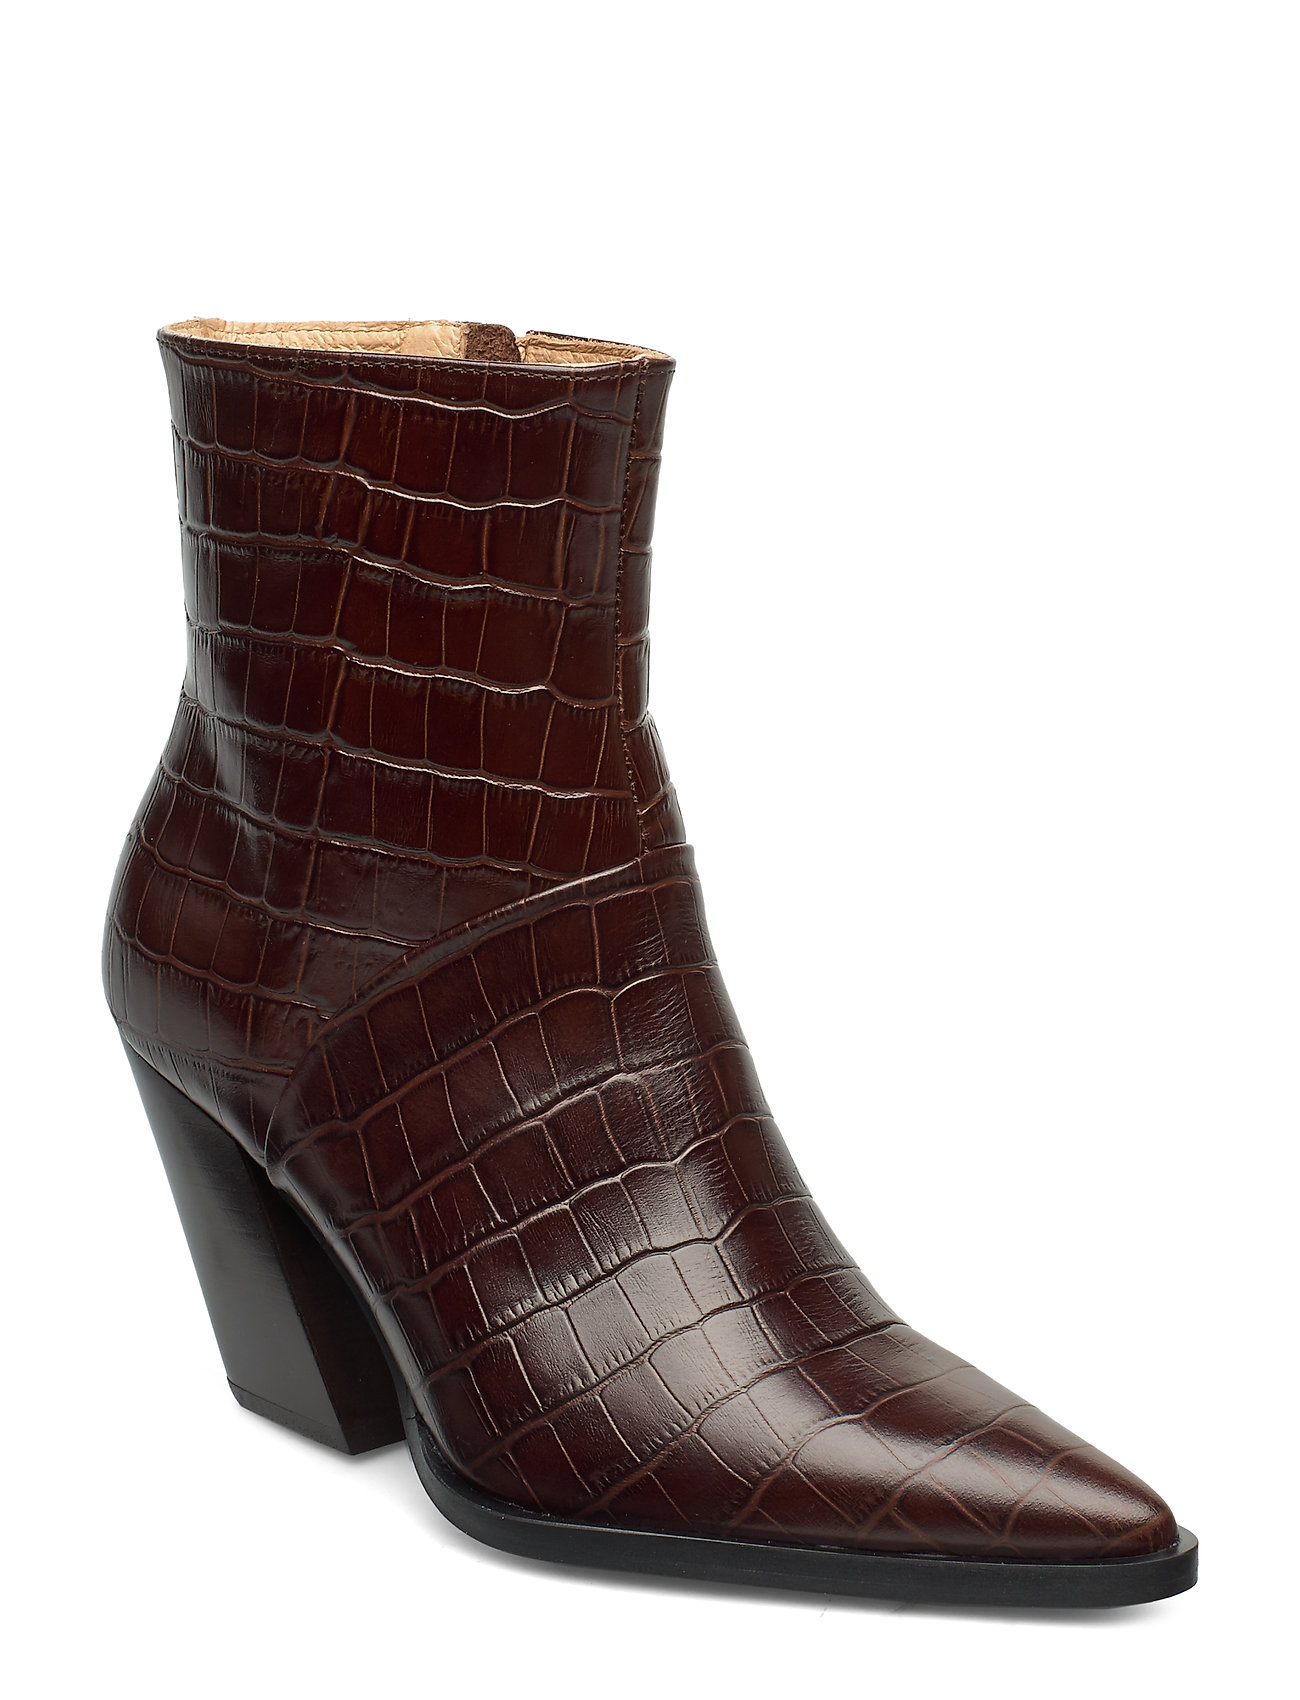 Image of Escape From The West Ankle Boot Shoes Boots Ankle Boots Ankle Boots With Heel Brun ANNY NORD (3228057327)